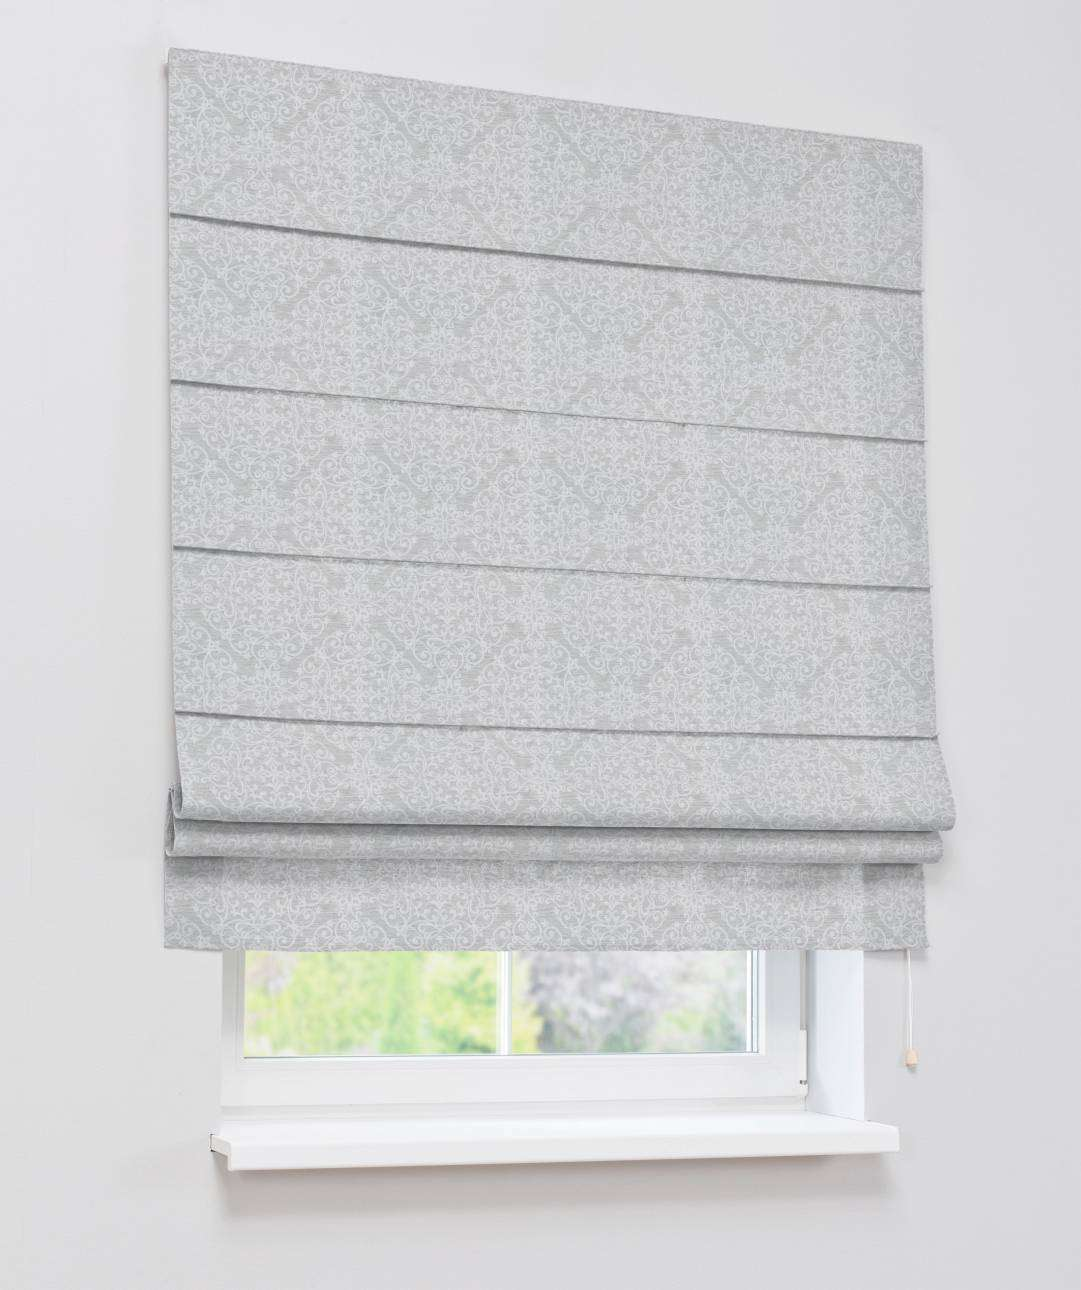 Padva roman blind  80 x 170 cm (31.5 x 67 inch) in collection Venice, fabric: 140-49